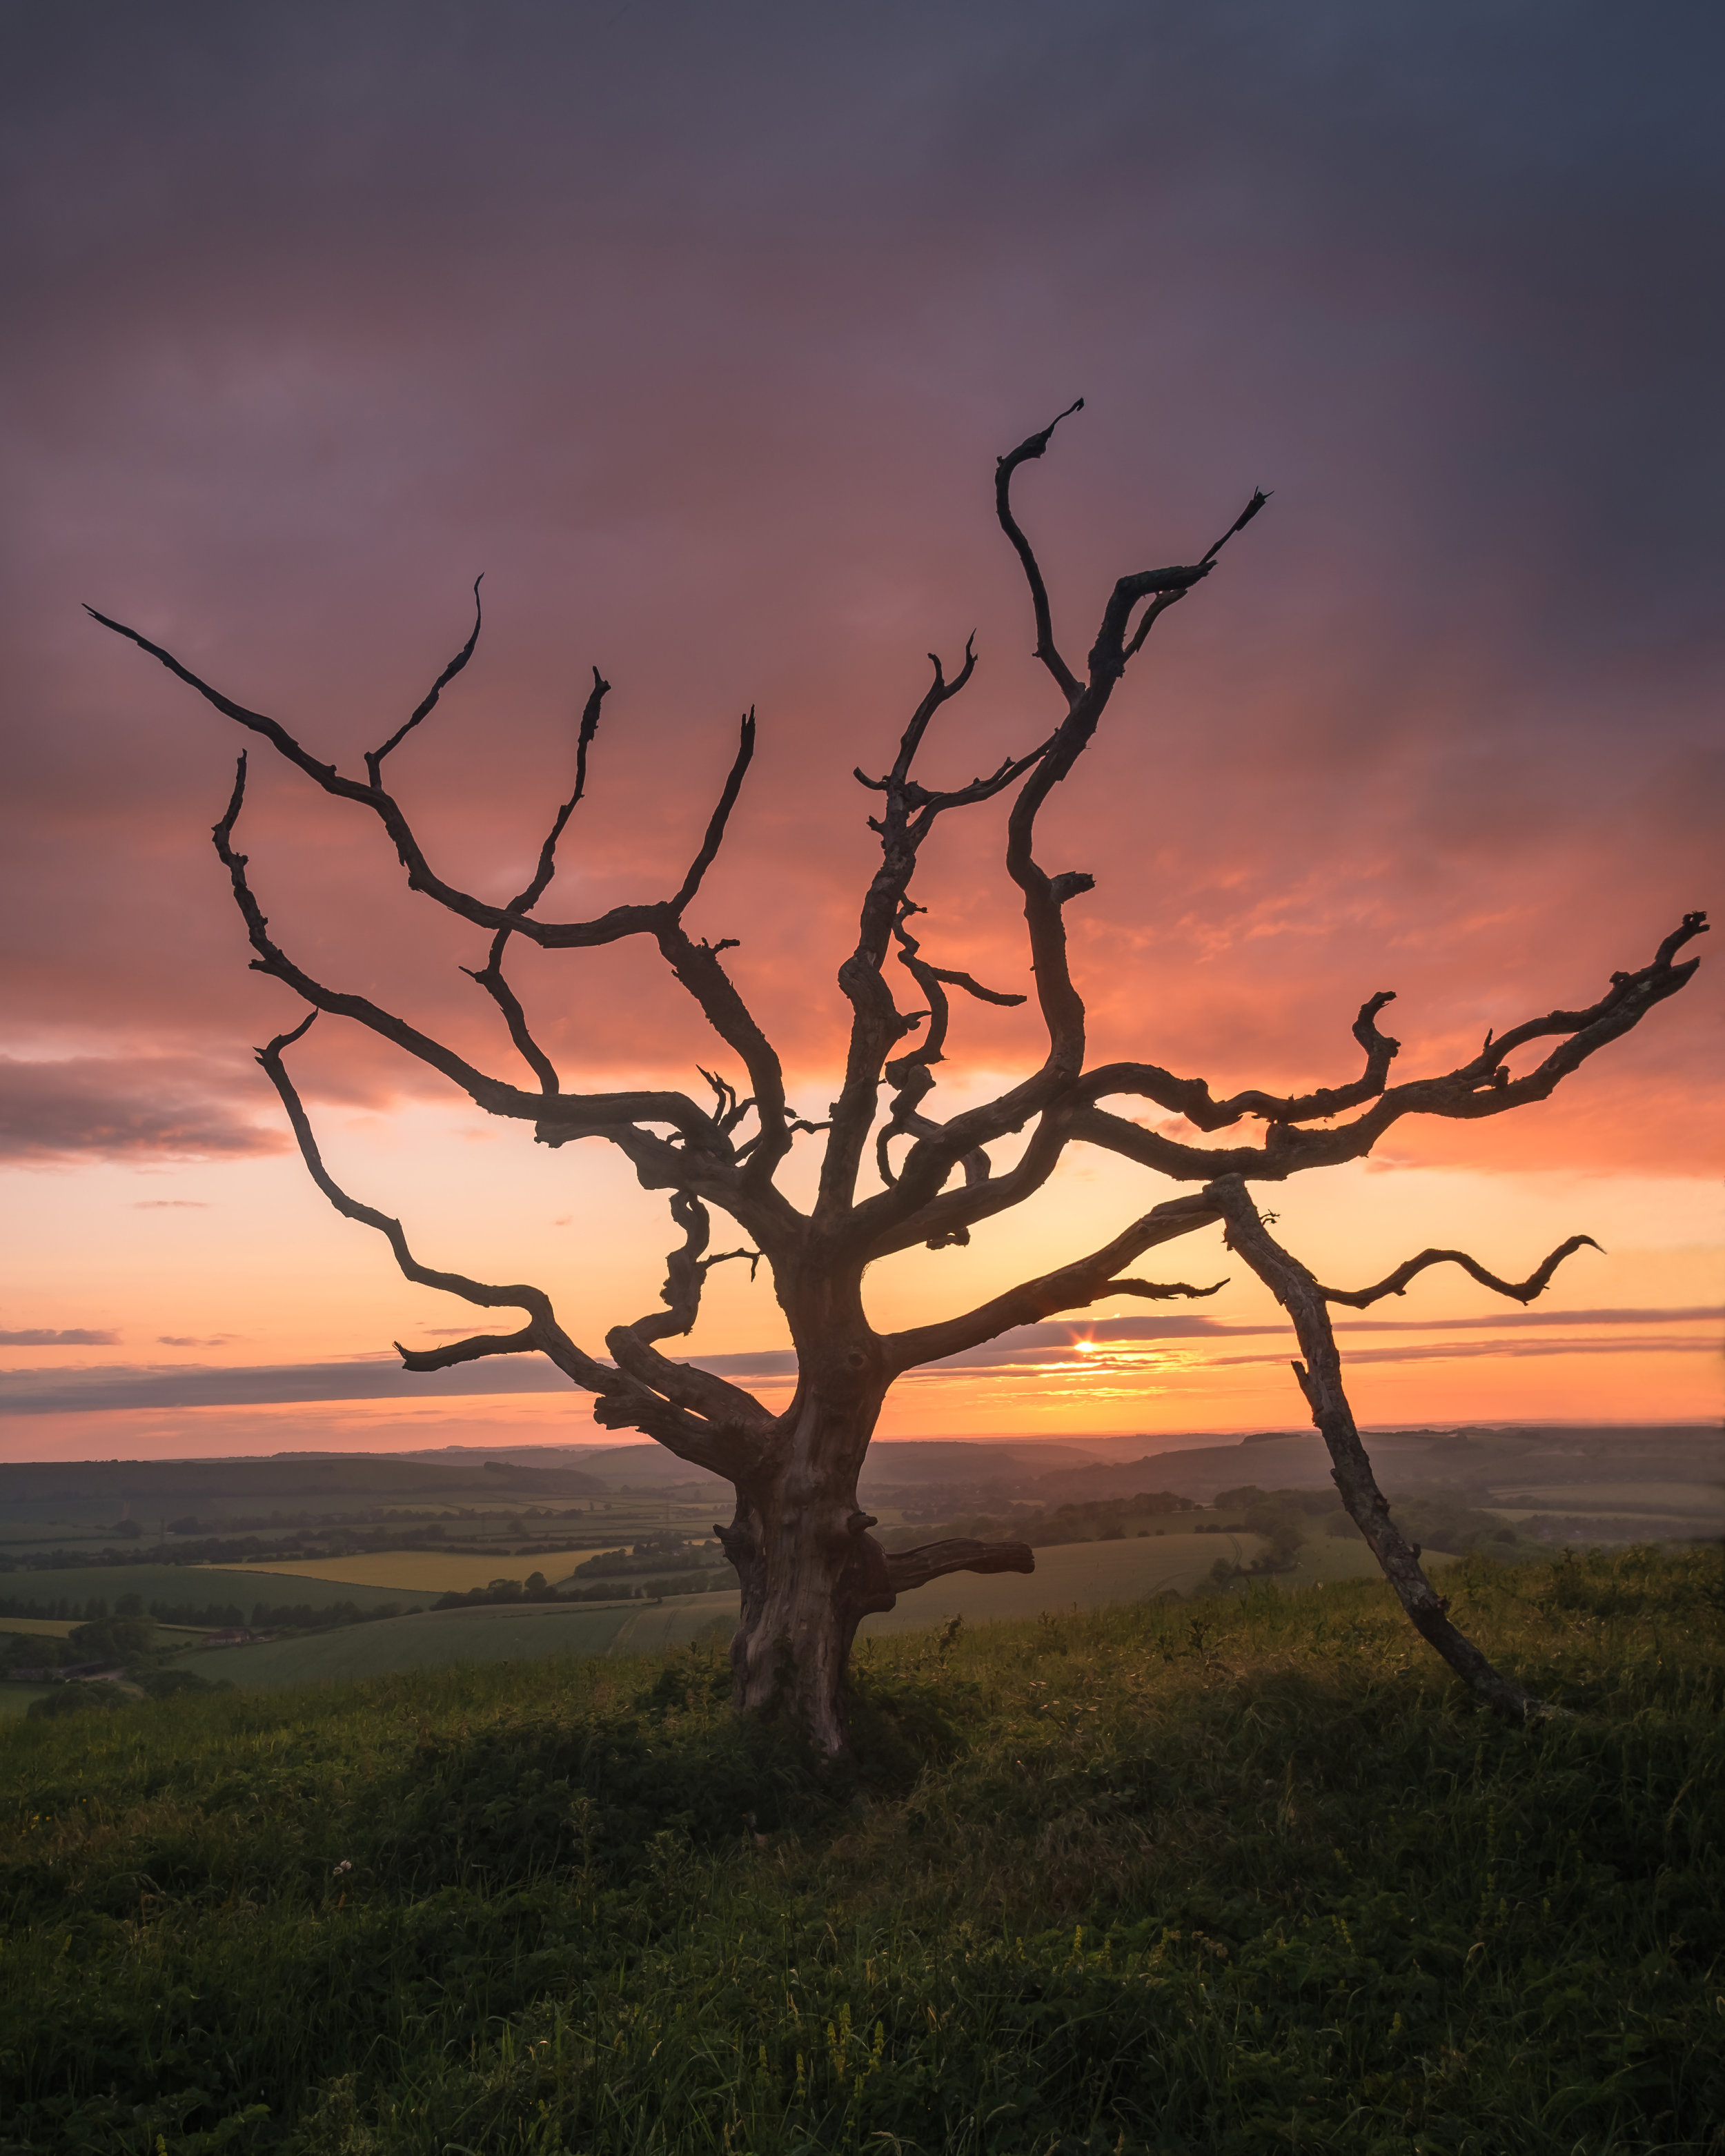 Sunset at the old tree - Hampshire